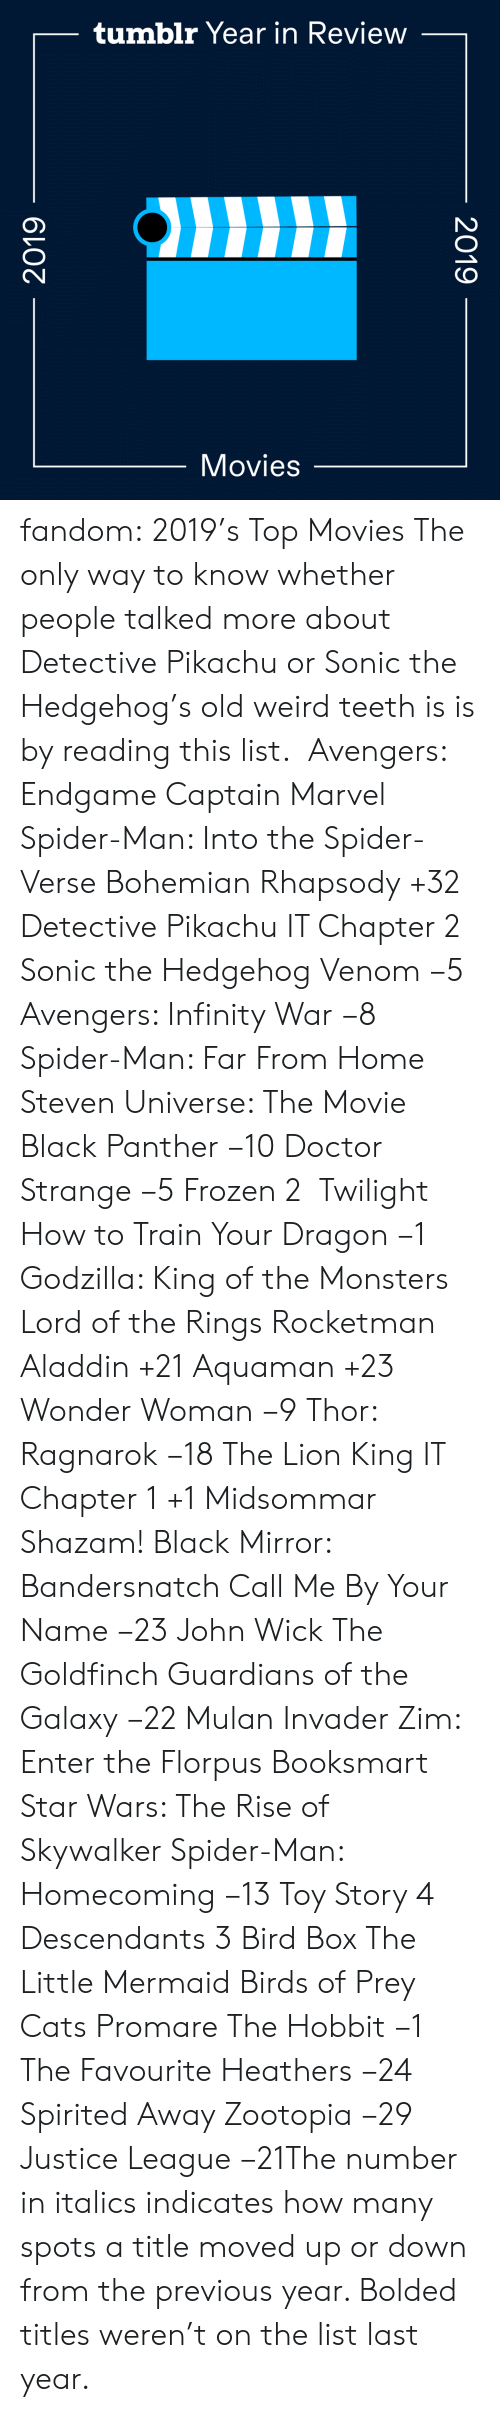 Avengers: tumblr Year in Review  Movies  2019  2019 fandom:  2019's Top Movies  The only way to know whether people talked more about Detective Pikachu or Sonic the Hedgehog's old weird teeth is is by reading this list.   Avengers: Endgame  Captain Marvel  Spider-Man: Into the Spider-Verse  Bohemian Rhapsody +32  Detective Pikachu  IT Chapter 2  Sonic the Hedgehog  Venom −5  Avengers: Infinity War −8  Spider-Man: Far From Home  Steven Universe: The Movie  Black Panther −10  Doctor Strange −5  Frozen 2   Twilight  How to Train Your Dragon −1  Godzilla: King of the Monsters  Lord of the Rings  Rocketman  Aladdin +21  Aquaman +23  Wonder Woman −9  Thor: Ragnarok −18  The Lion King  IT Chapter 1 +1  Midsommar  Shazam!  Black Mirror: Bandersnatch  Call Me By Your Name −23  John Wick  The Goldfinch  Guardians of the Galaxy −22  Mulan  Invader Zim: Enter the Florpus  Booksmart  Star Wars: The Rise of Skywalker  Spider-Man: Homecoming −13  Toy Story 4  Descendants 3  Bird Box  The Little Mermaid  Birds of Prey  Cats  Promare  The Hobbit −1  The Favourite  Heathers −24  Spirited Away  Zootopia −29 Justice League −21The number in italics indicates how many spots a title moved up or down from the previous year. Bolded titles weren't on the list last year.